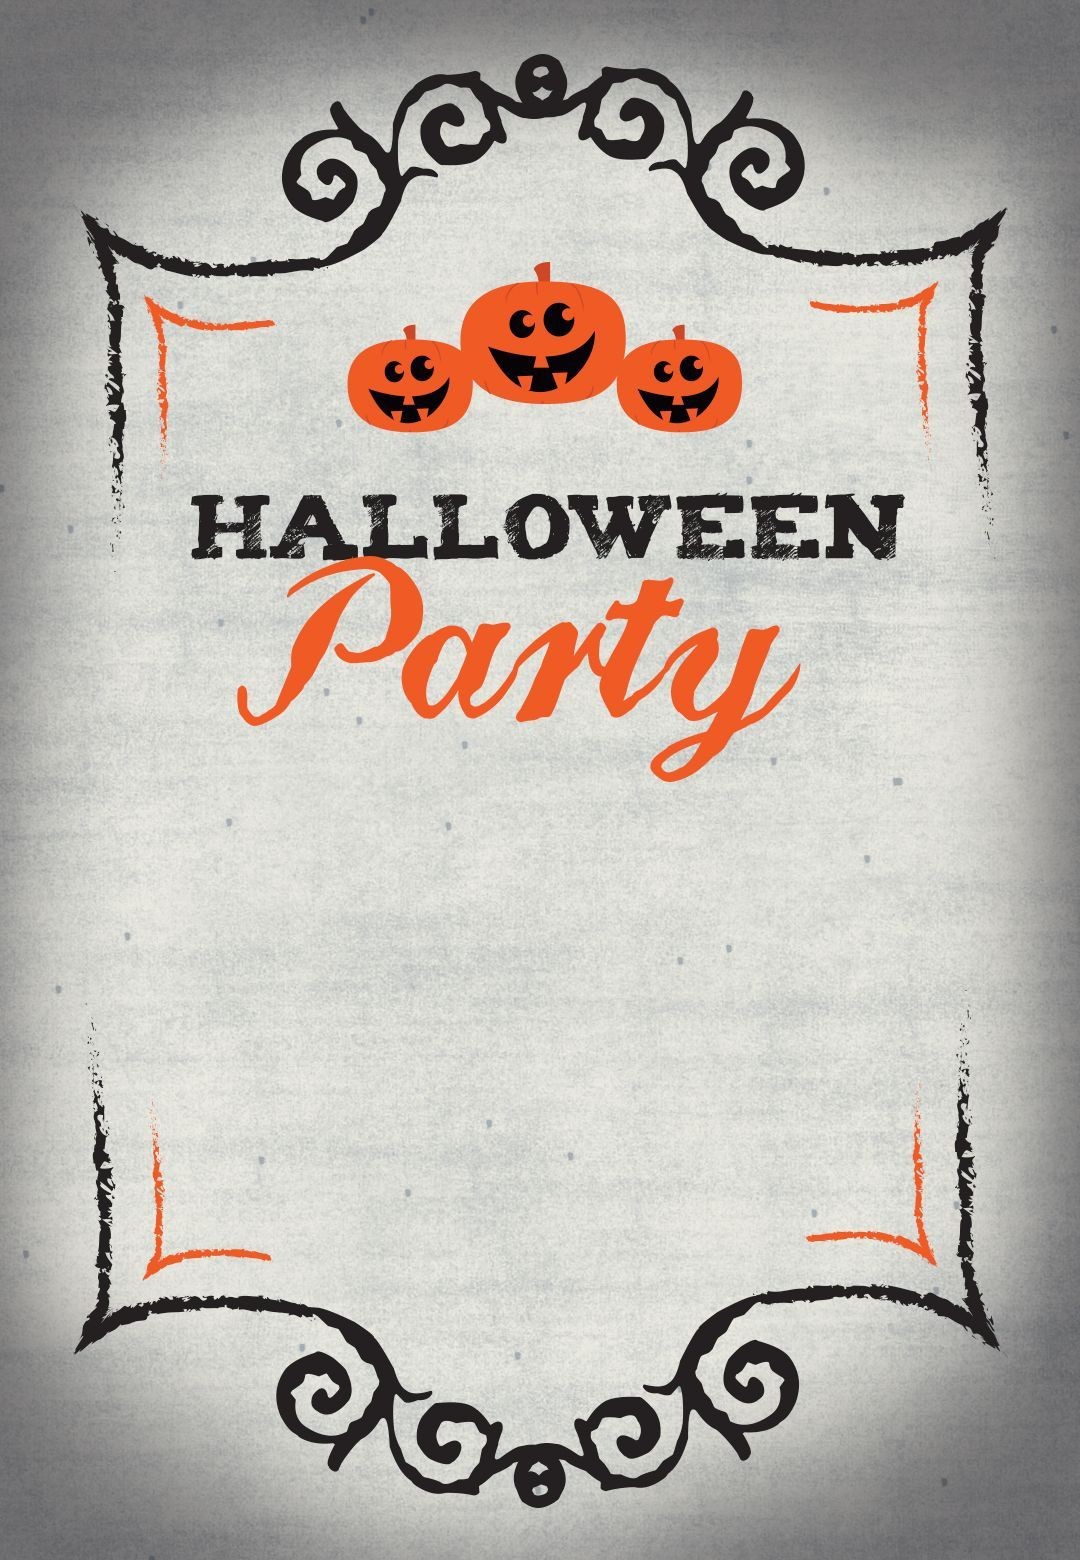 005 Unforgettable Halloween Party Invitation Template Concept  Templates Scary SpookyFull